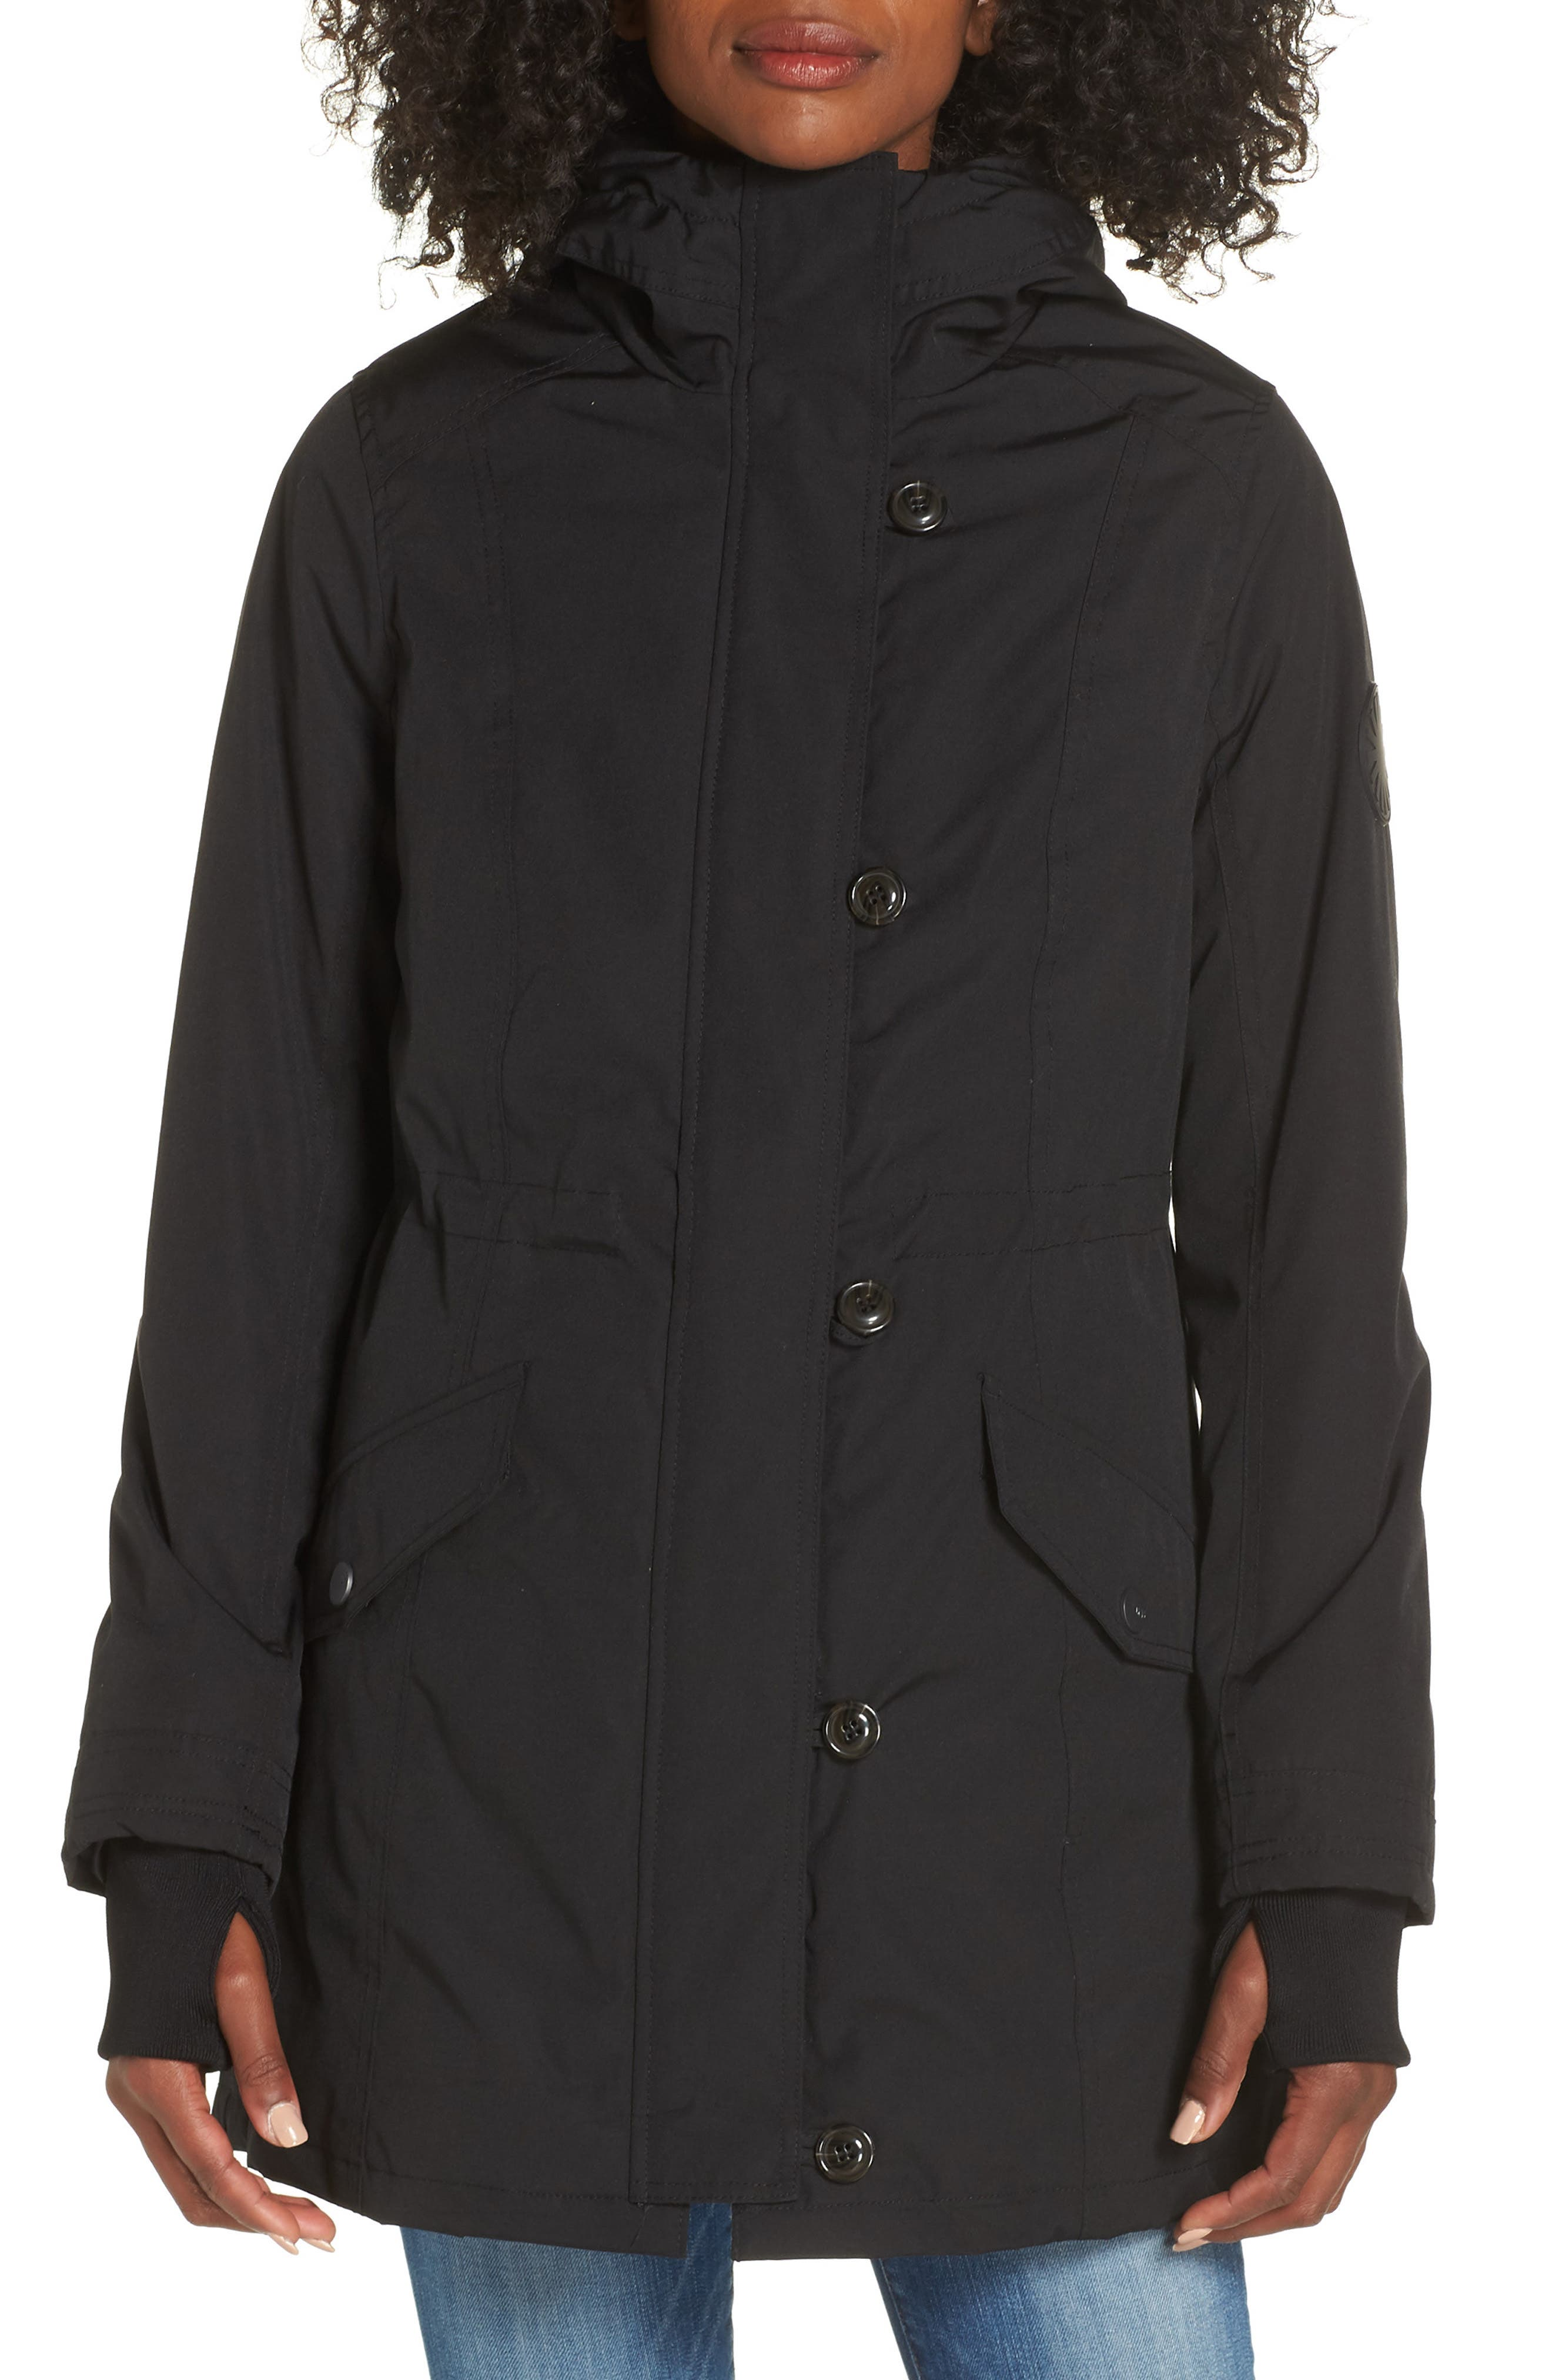 Adirondack Down Parka,                             Alternate thumbnail 9, color,                             BLACK